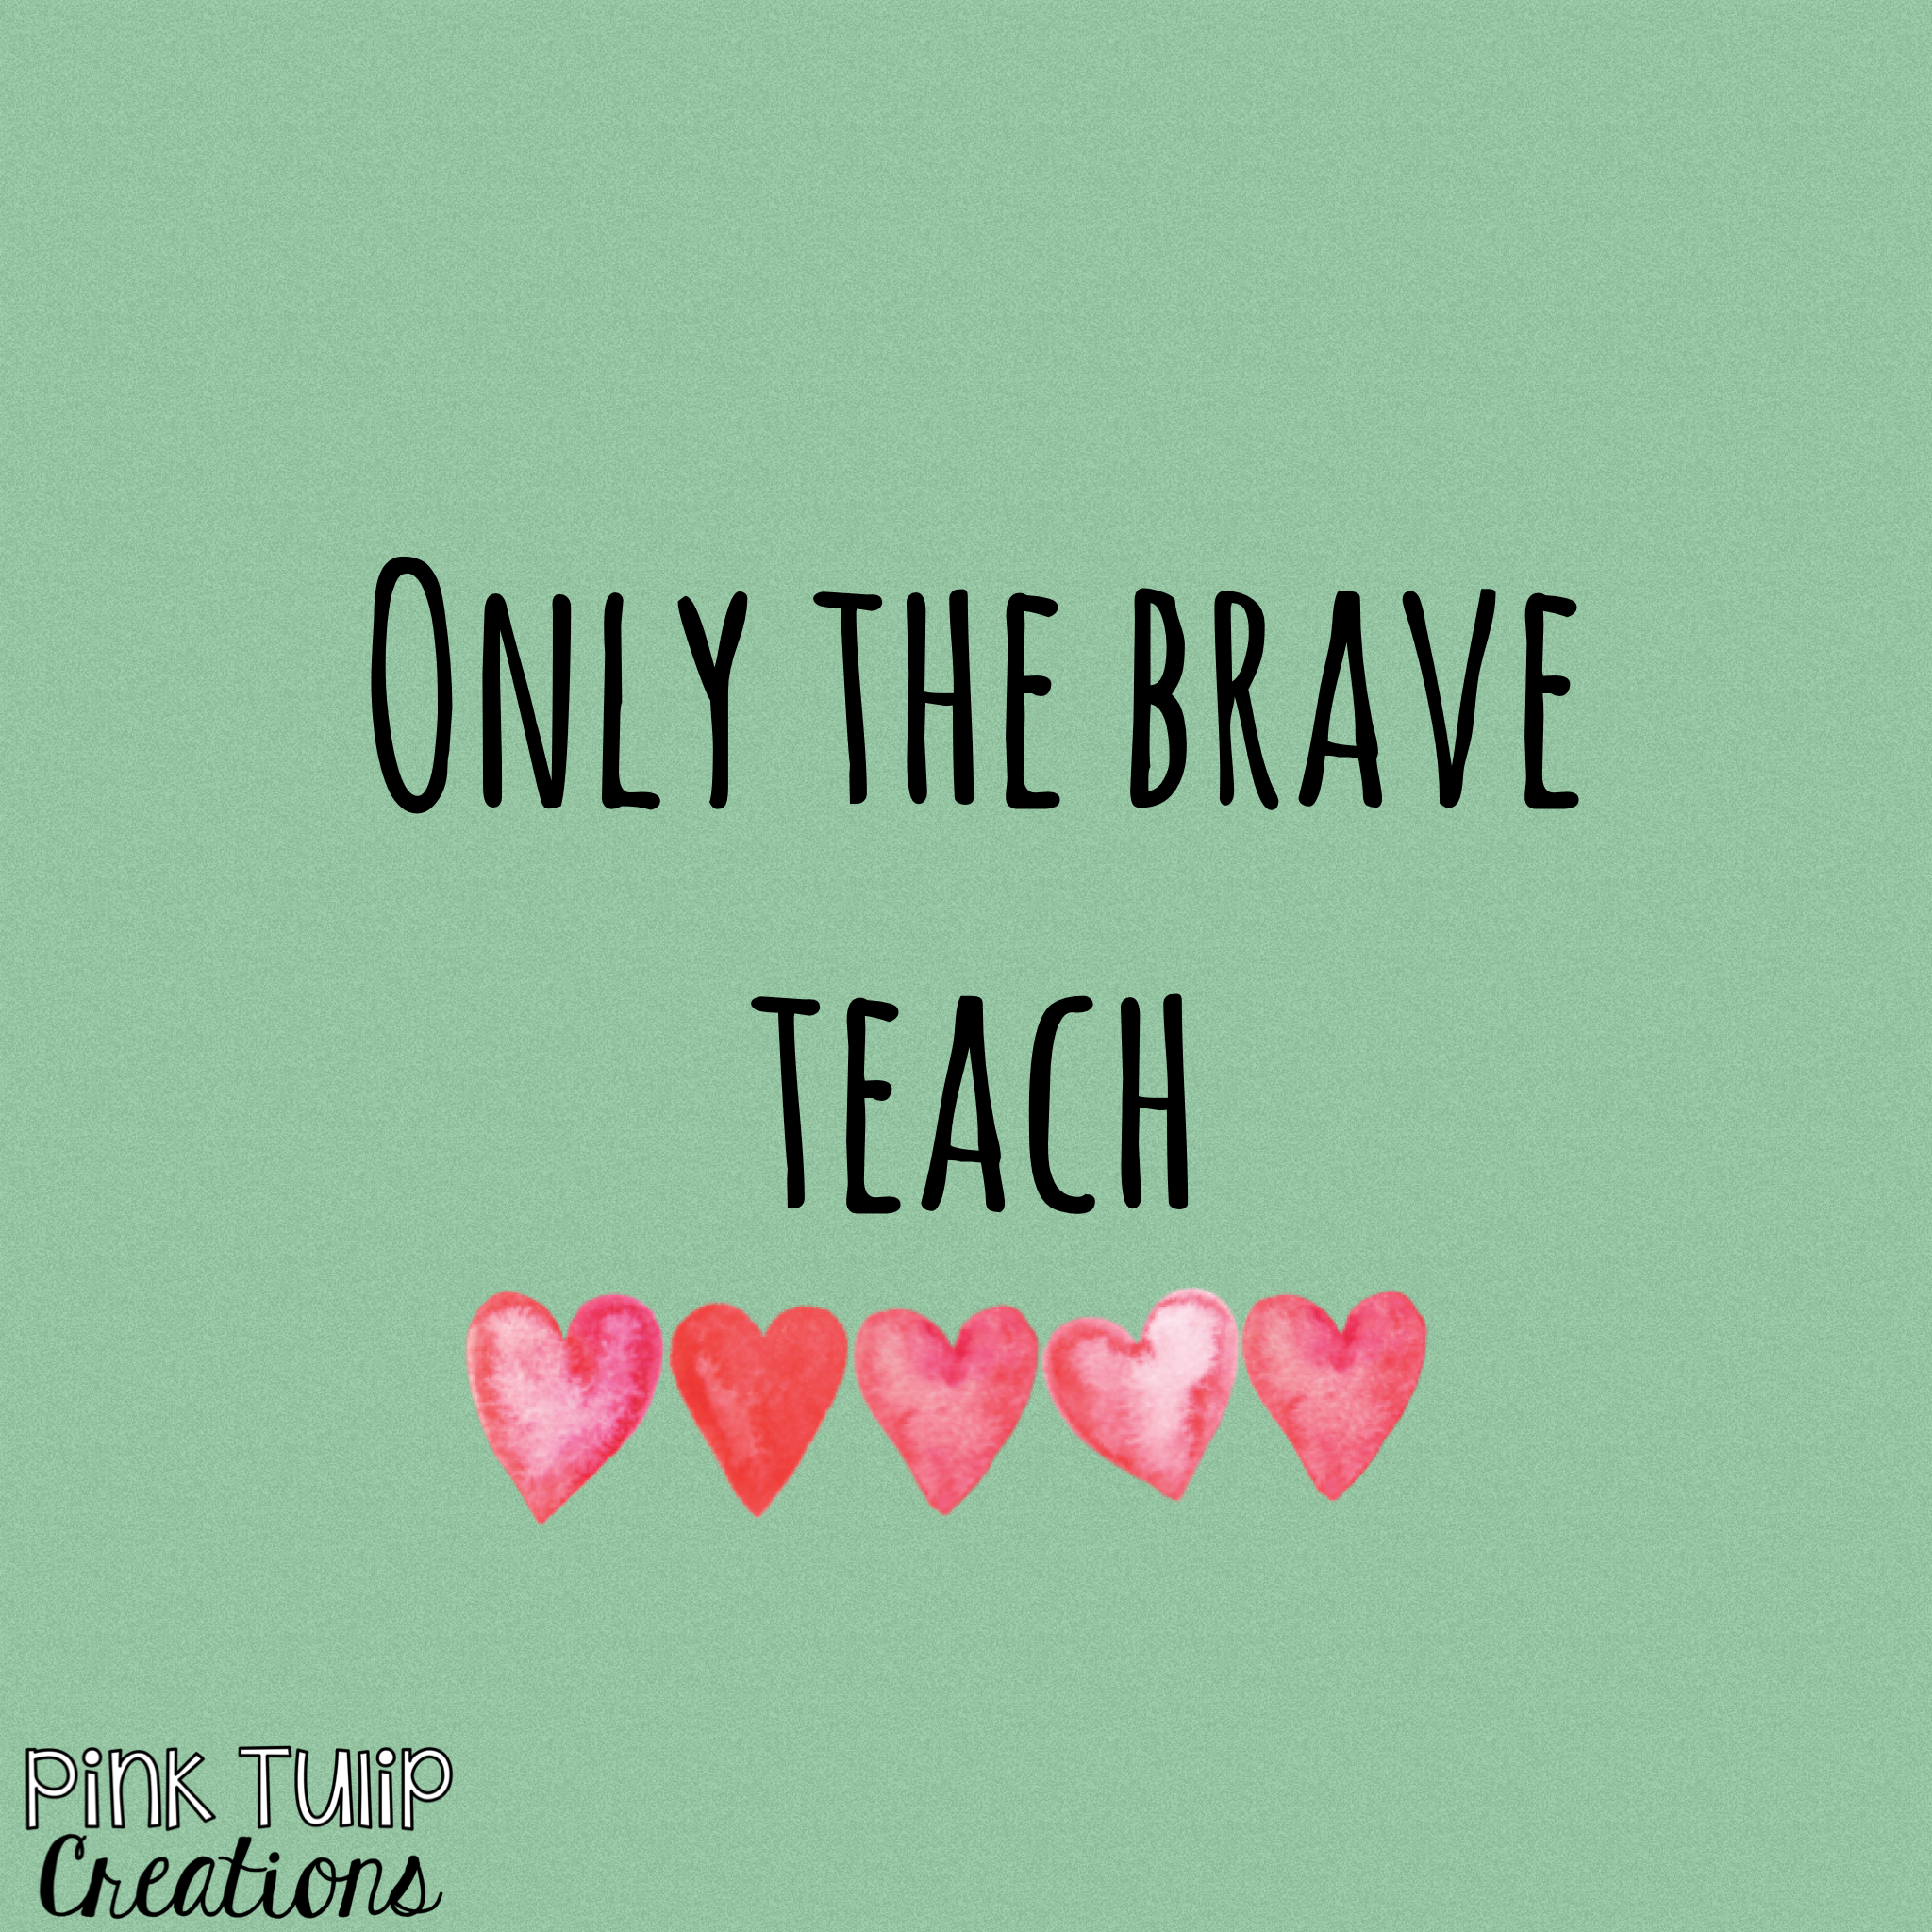 Only The Brave Teach Teaching Quotes Educational Education Teacher Learning Developing